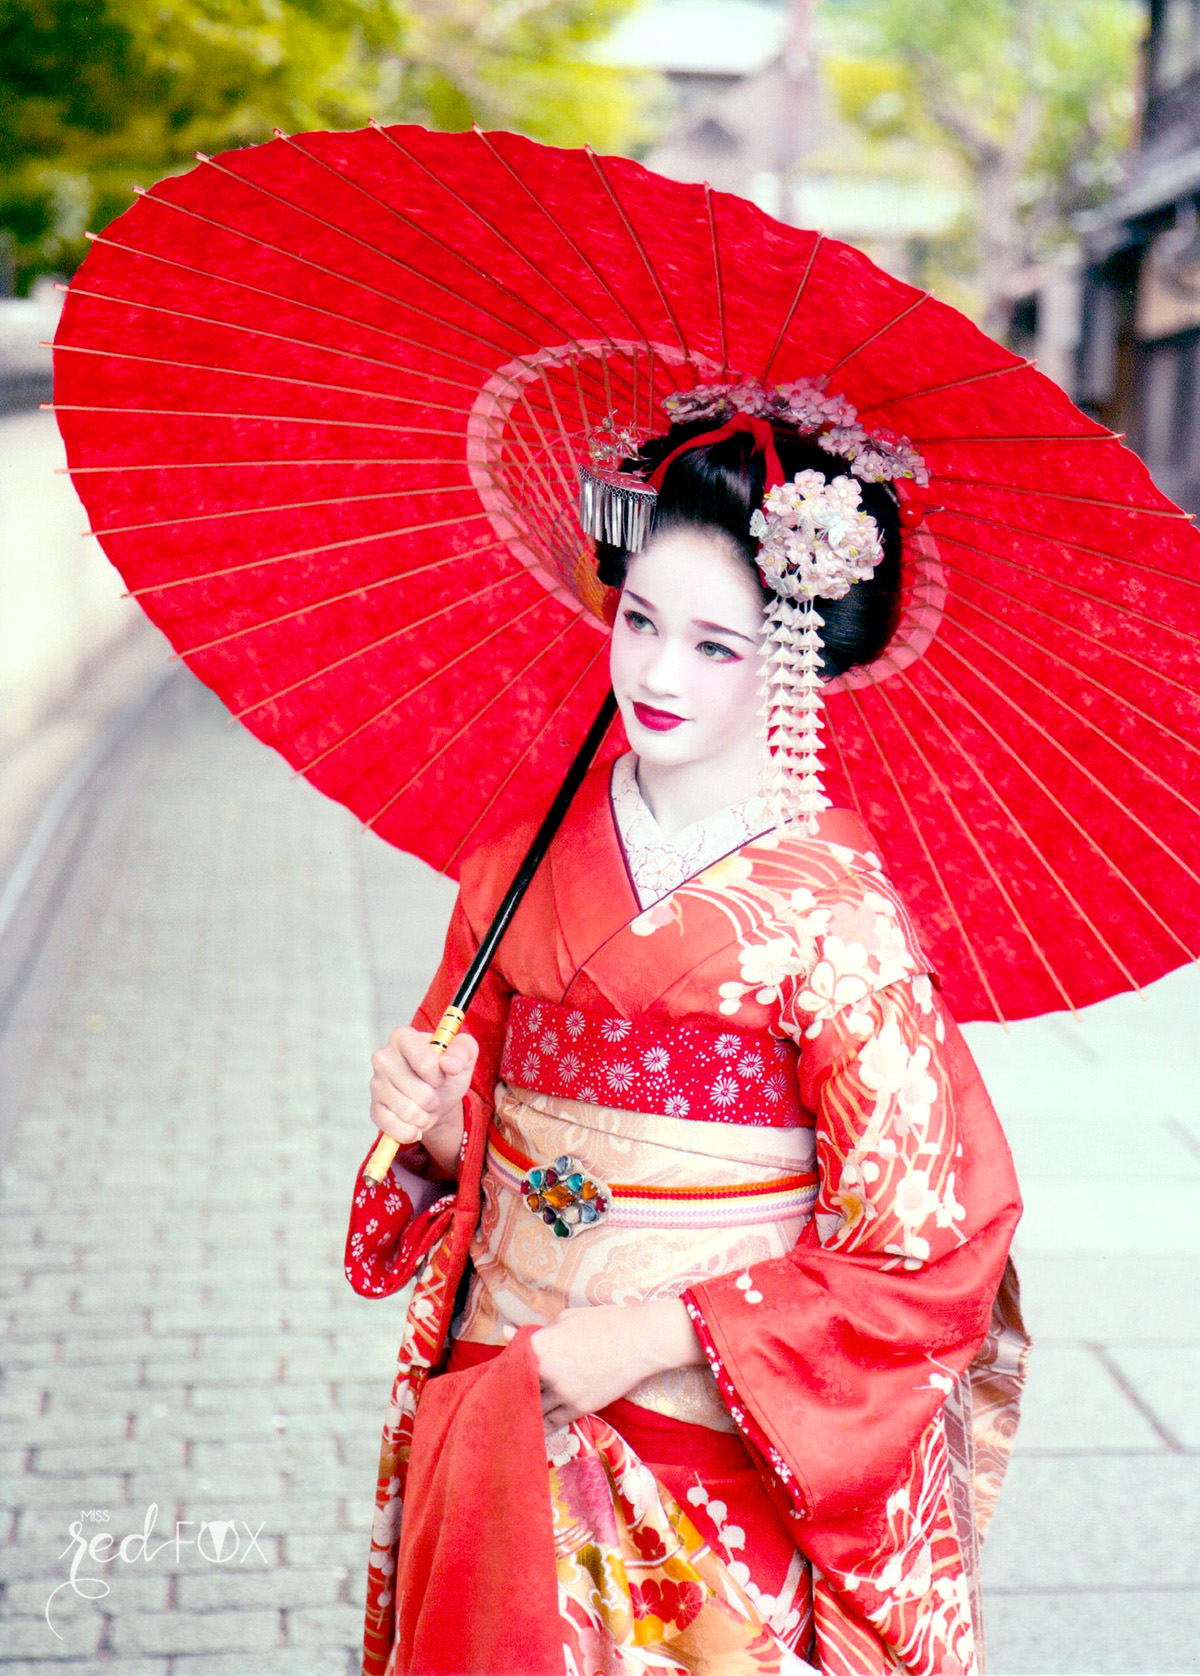 missredfox - Japan - Kyoto - 13